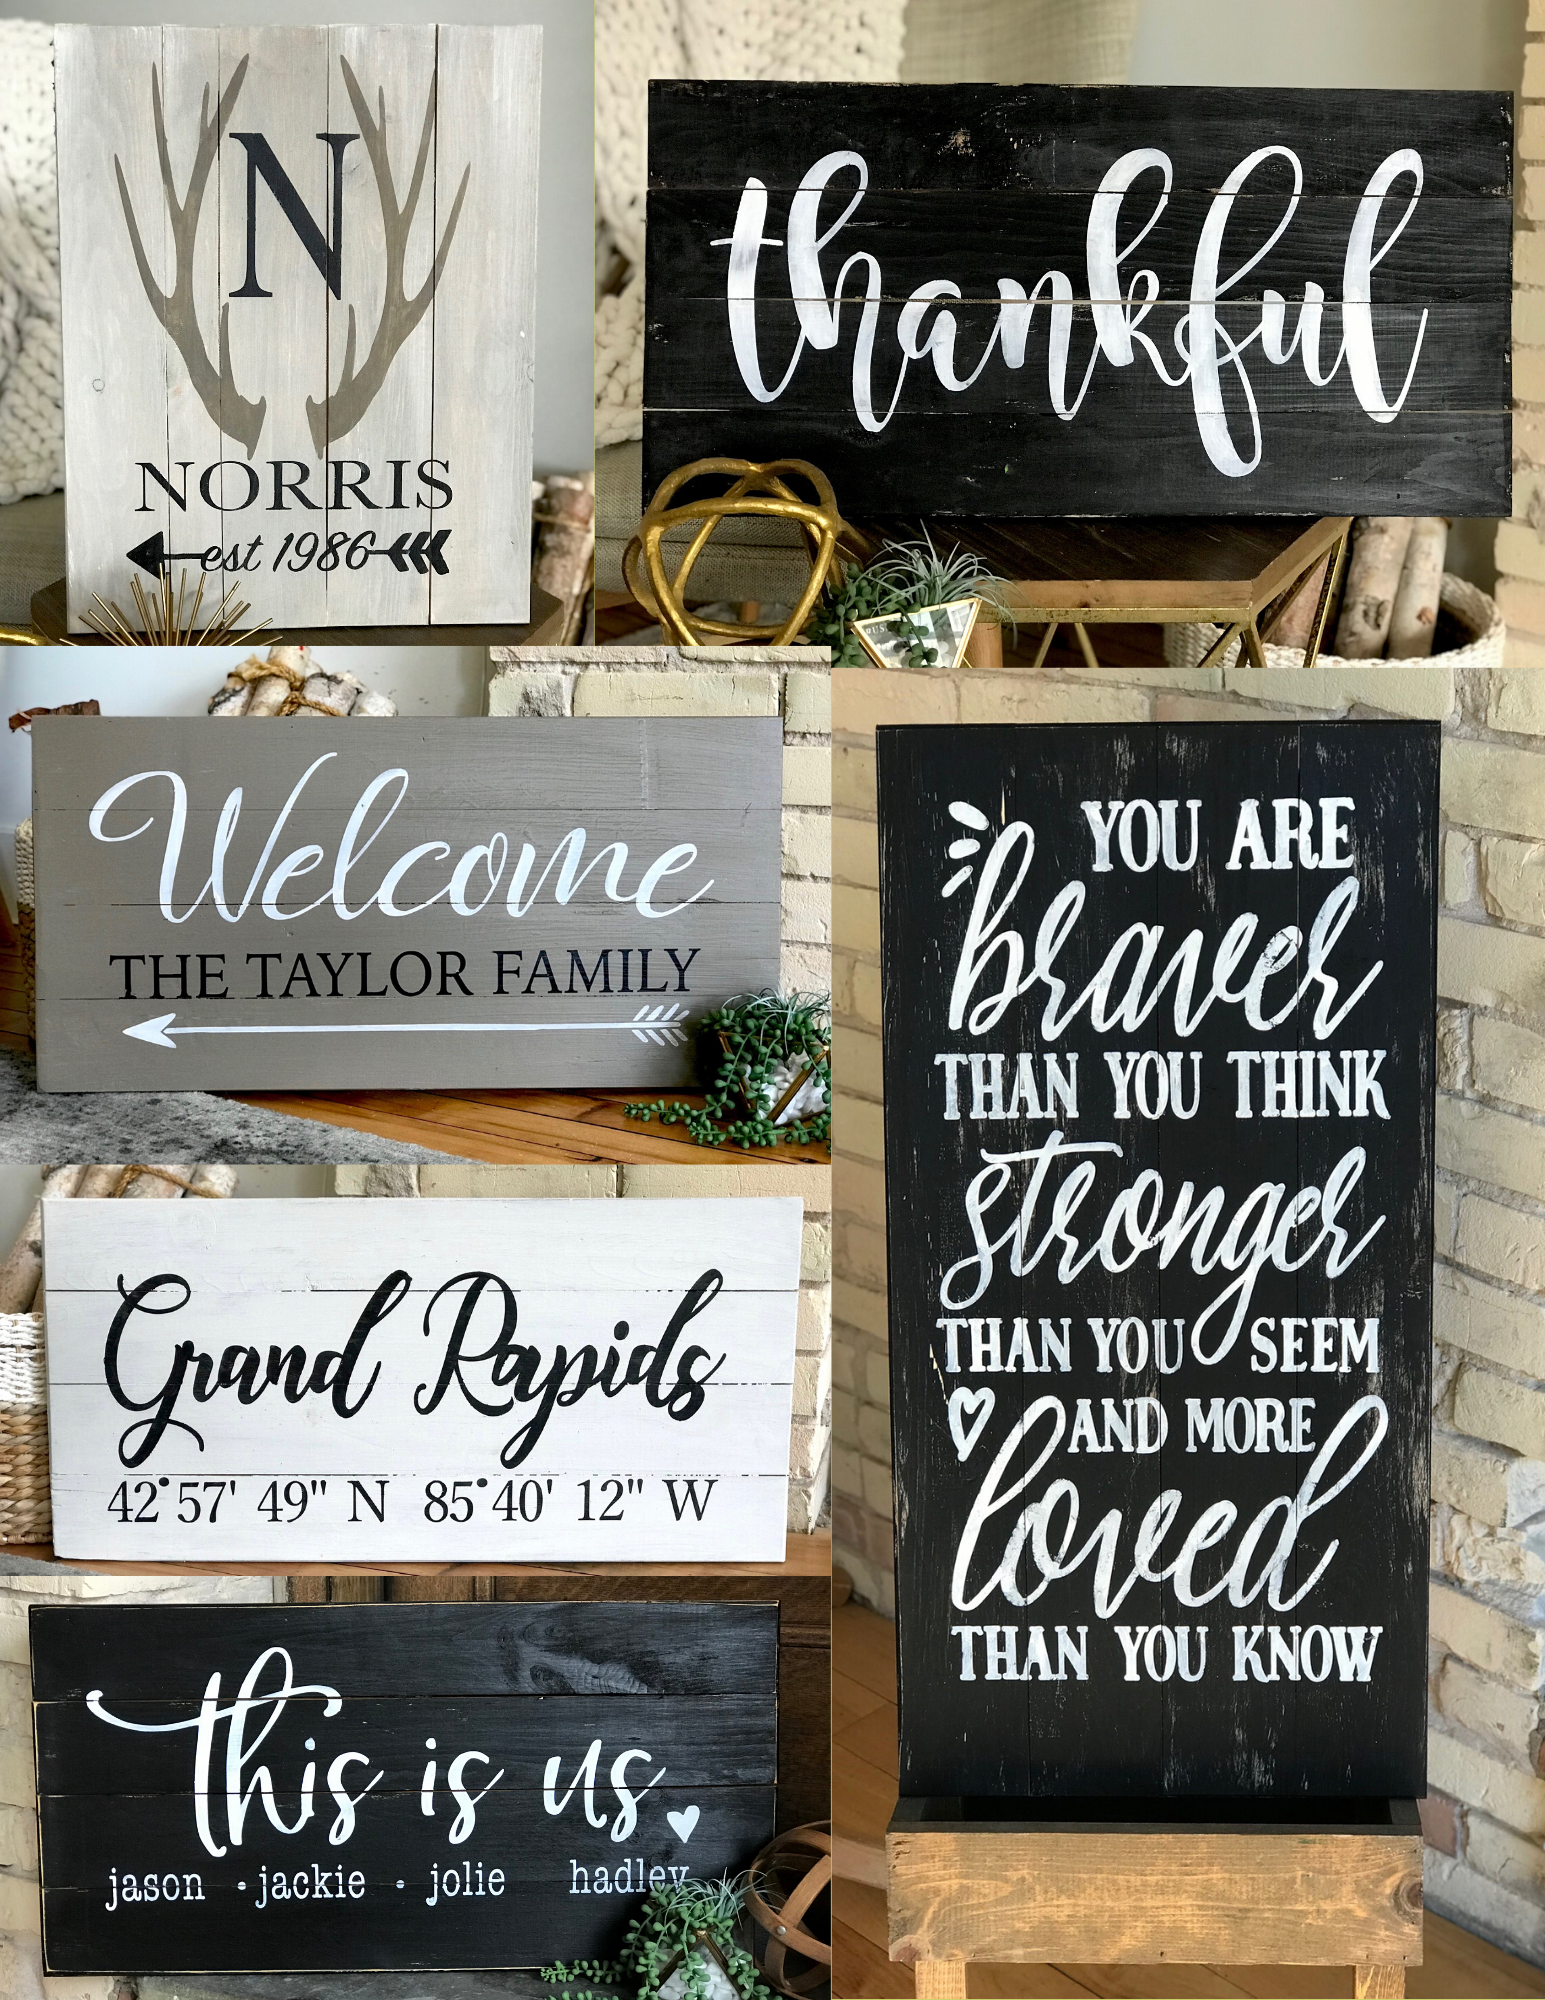 WineDown Wednesday Wooden Sign Workshop! $55